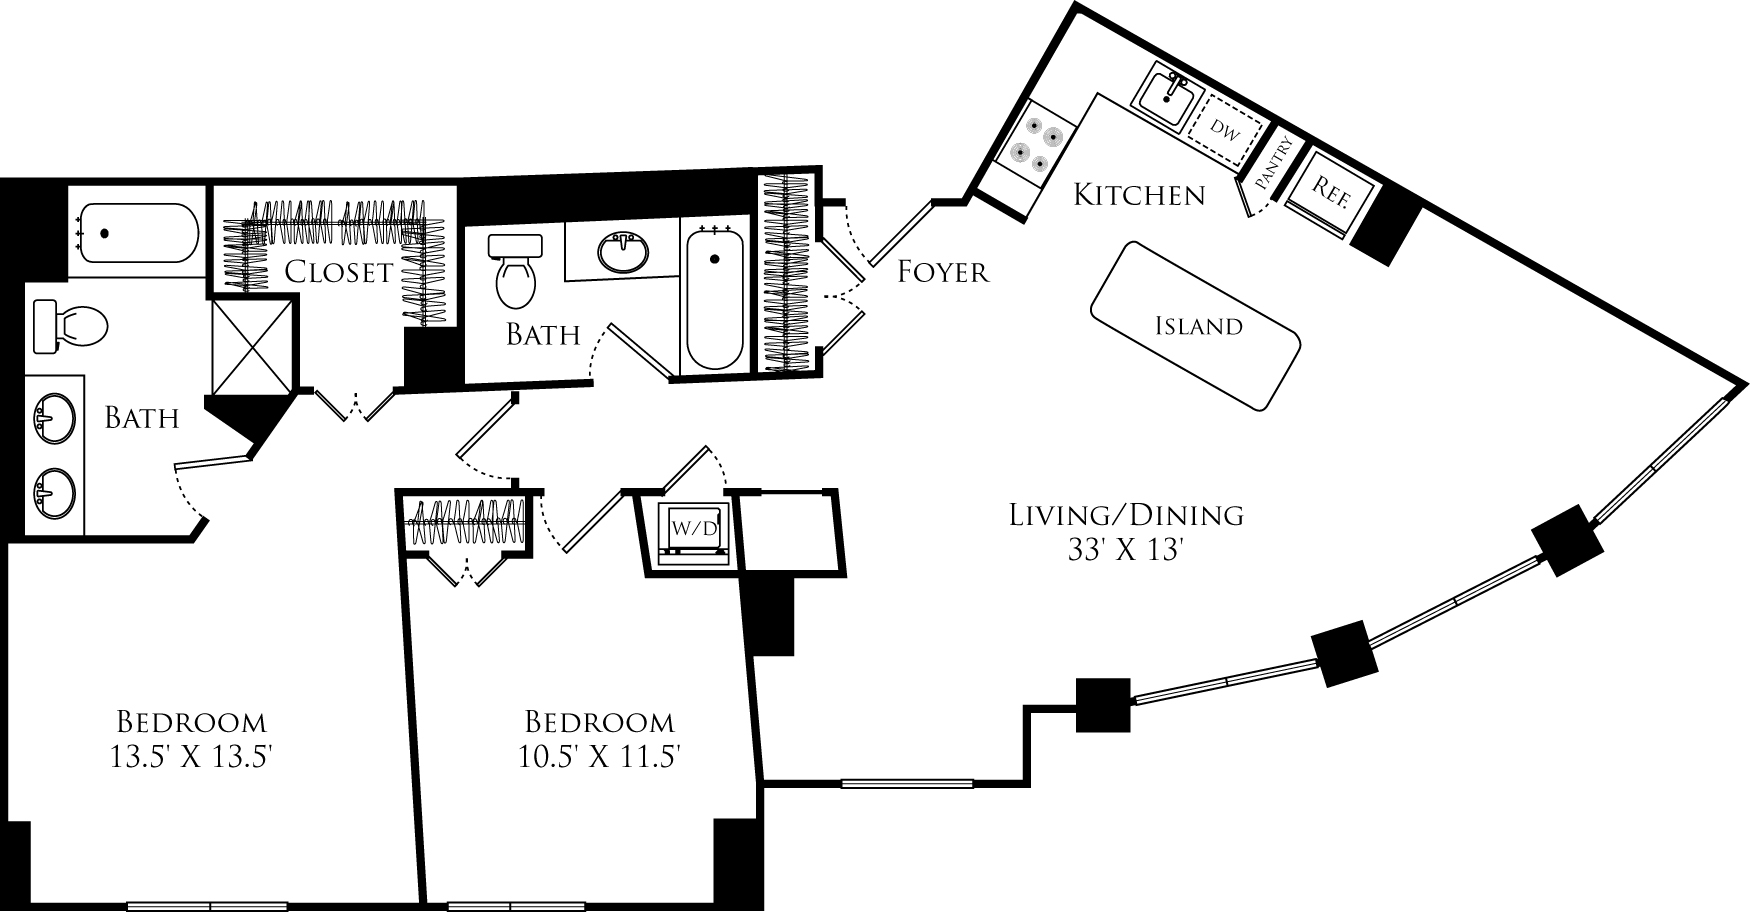 B2M floor plan with 2 beds, 2 baths and is 1188 square feet